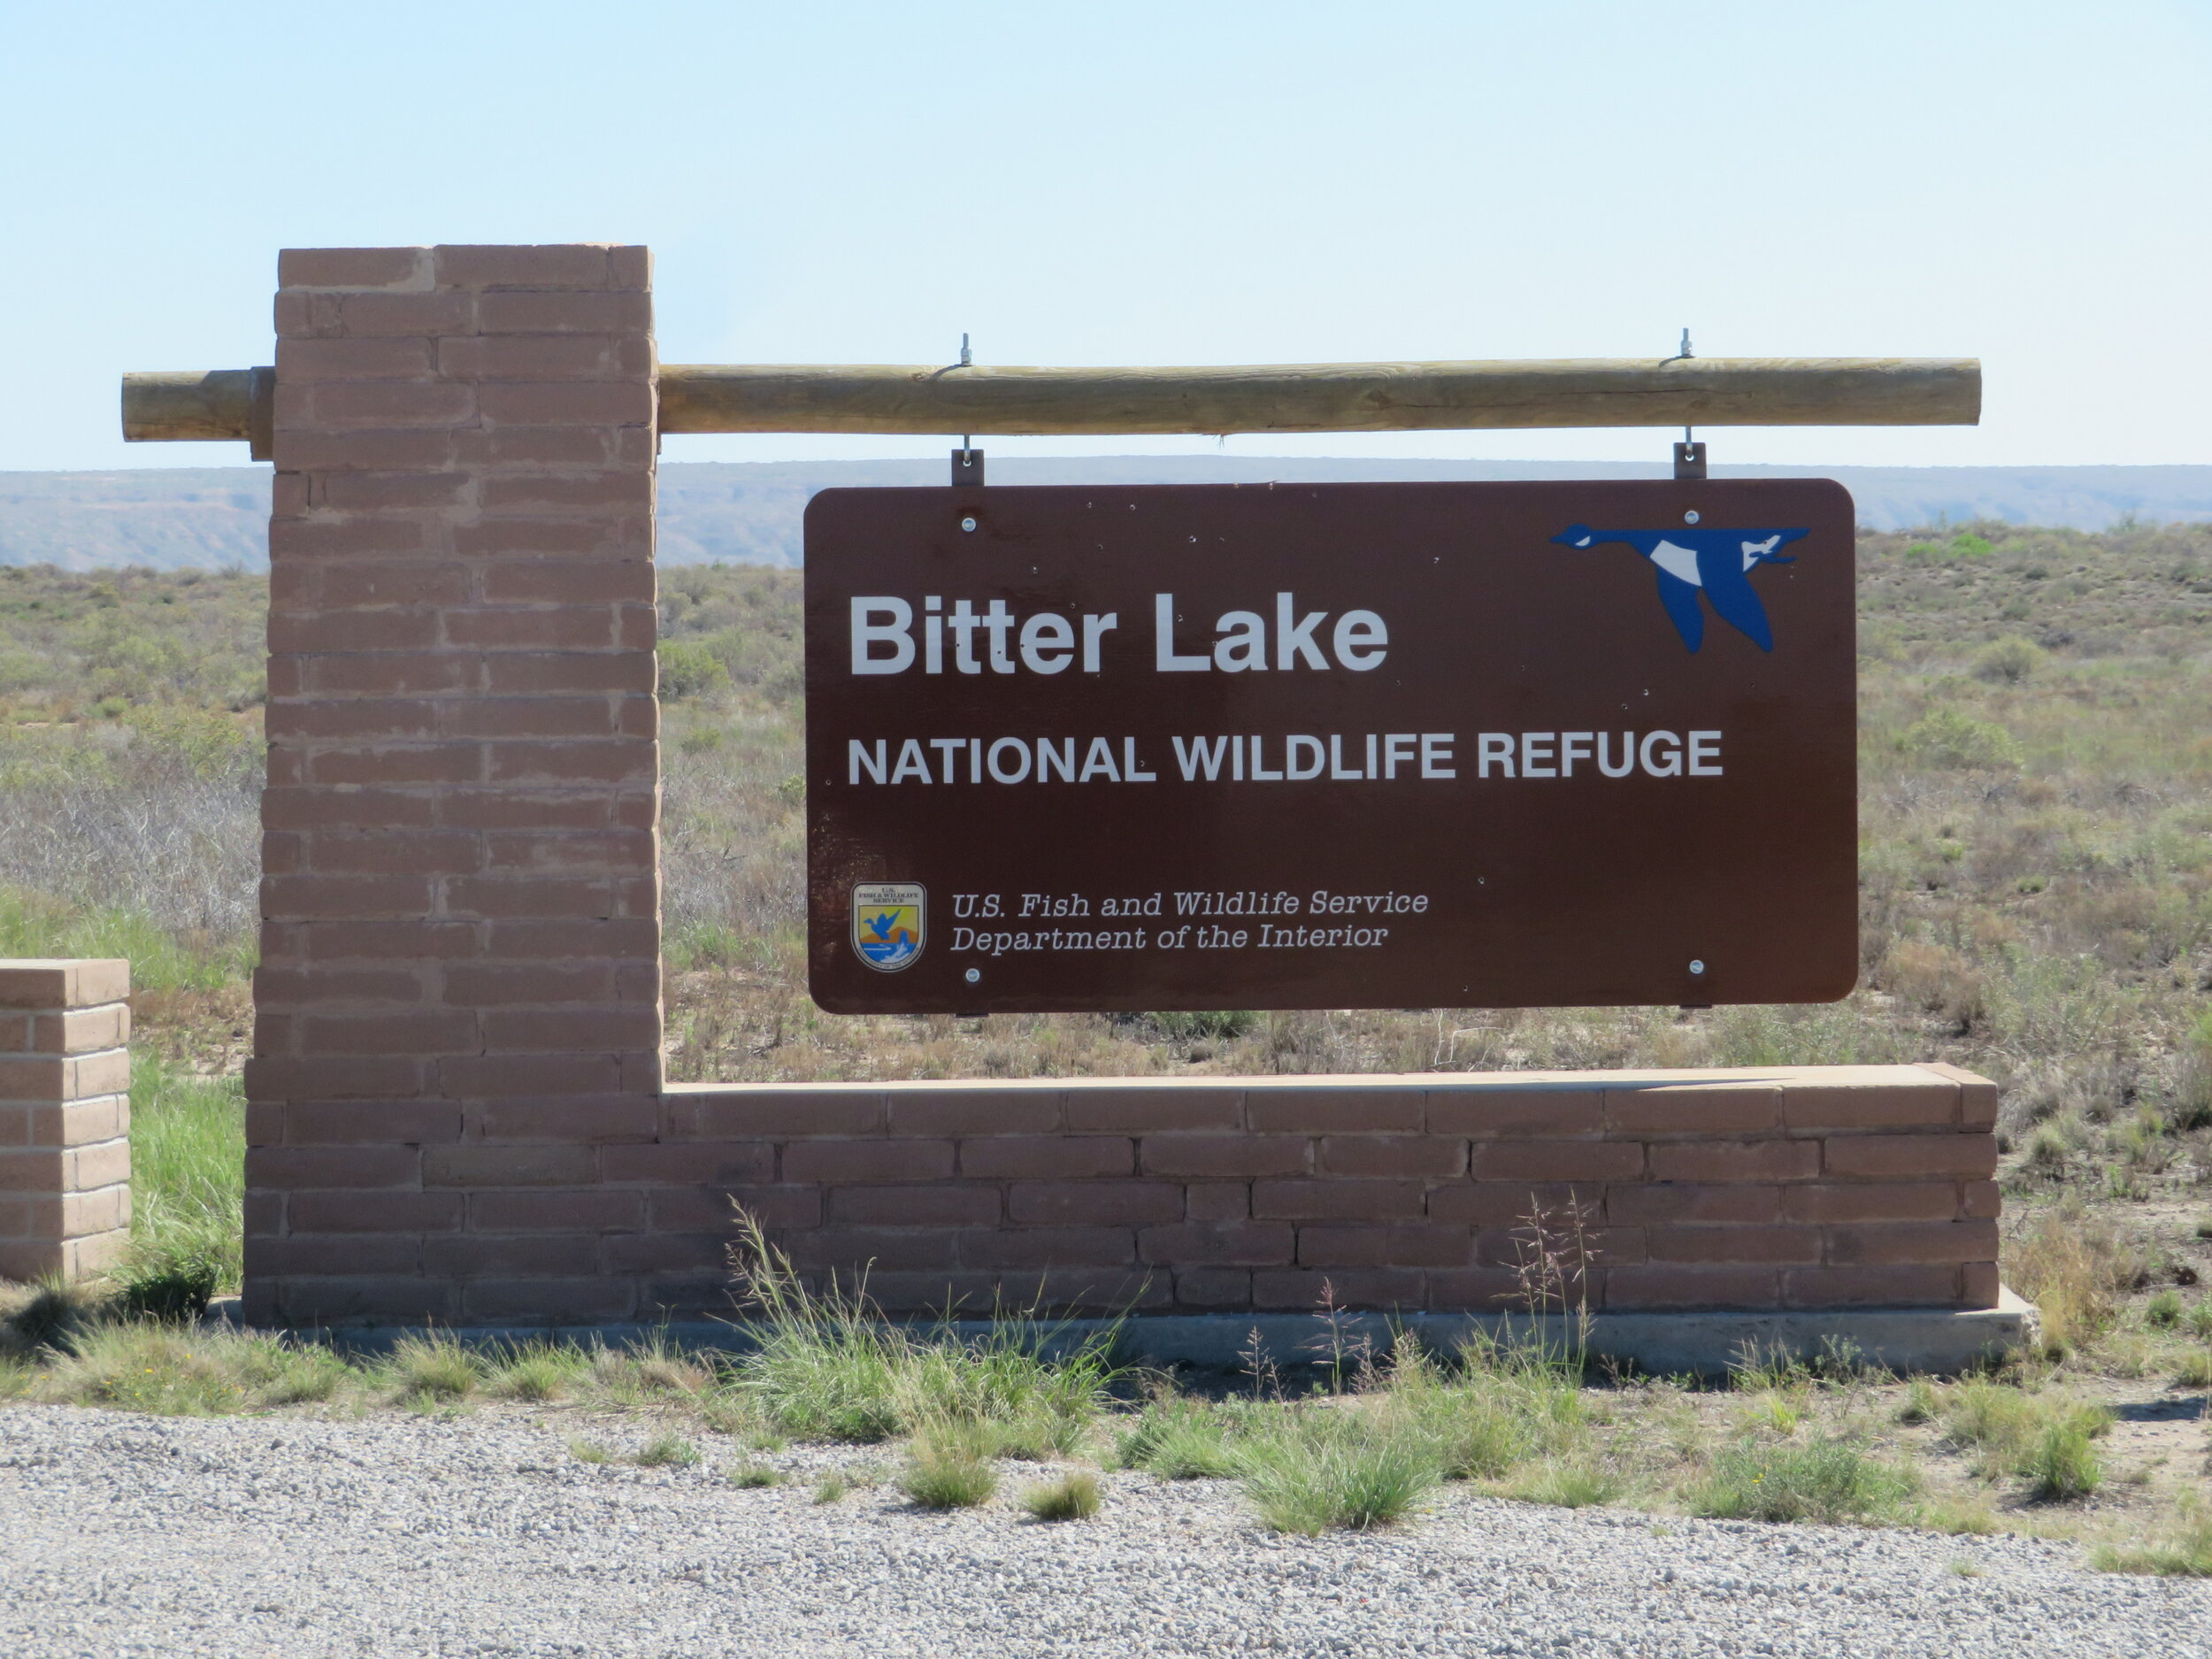 Bitter-Lake-NWR_sign.JPG